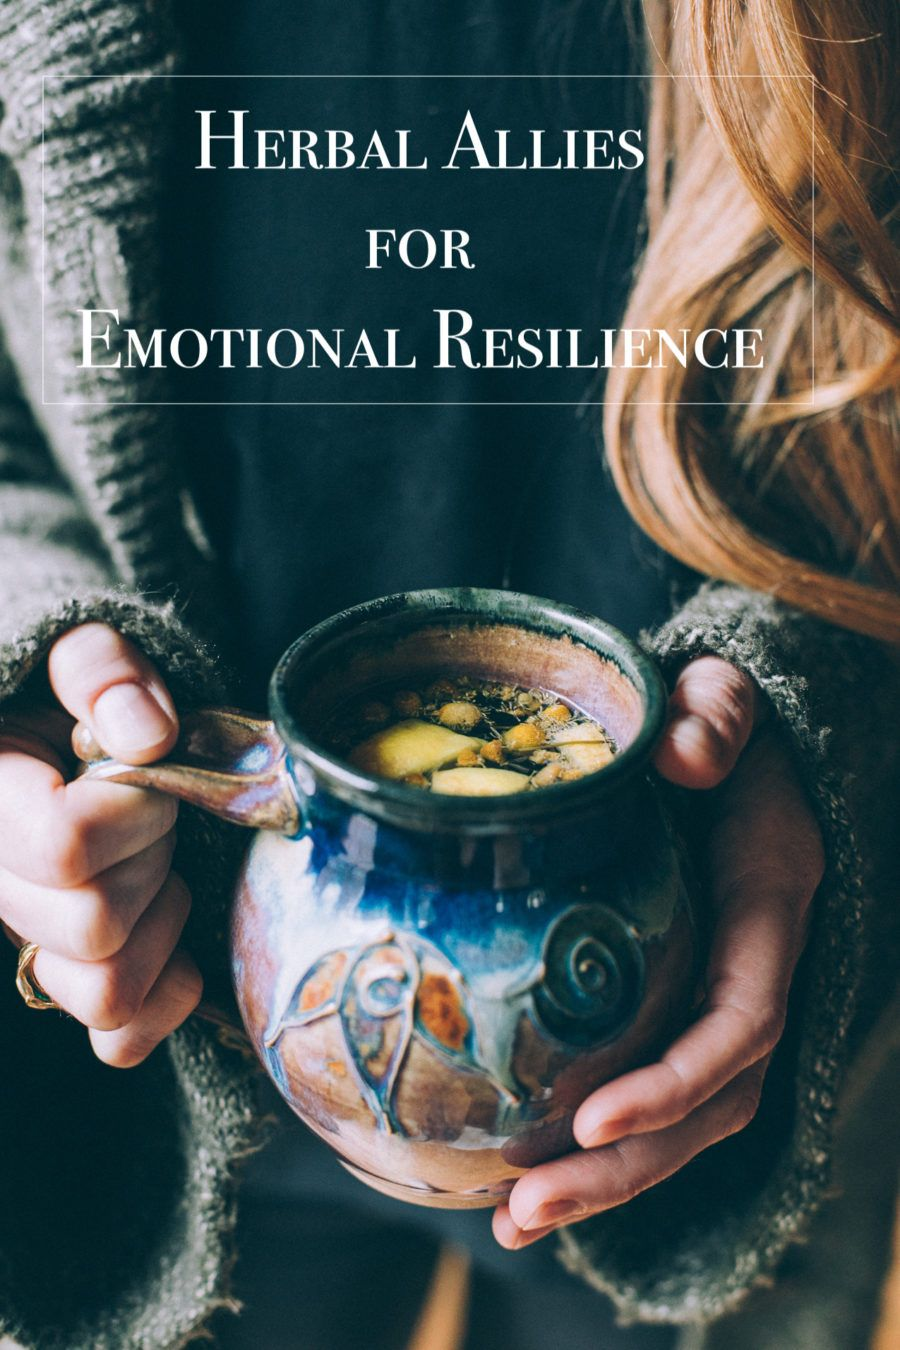 Herbal Allies for Emotional Resilience | Ginger Tonic Botanicals